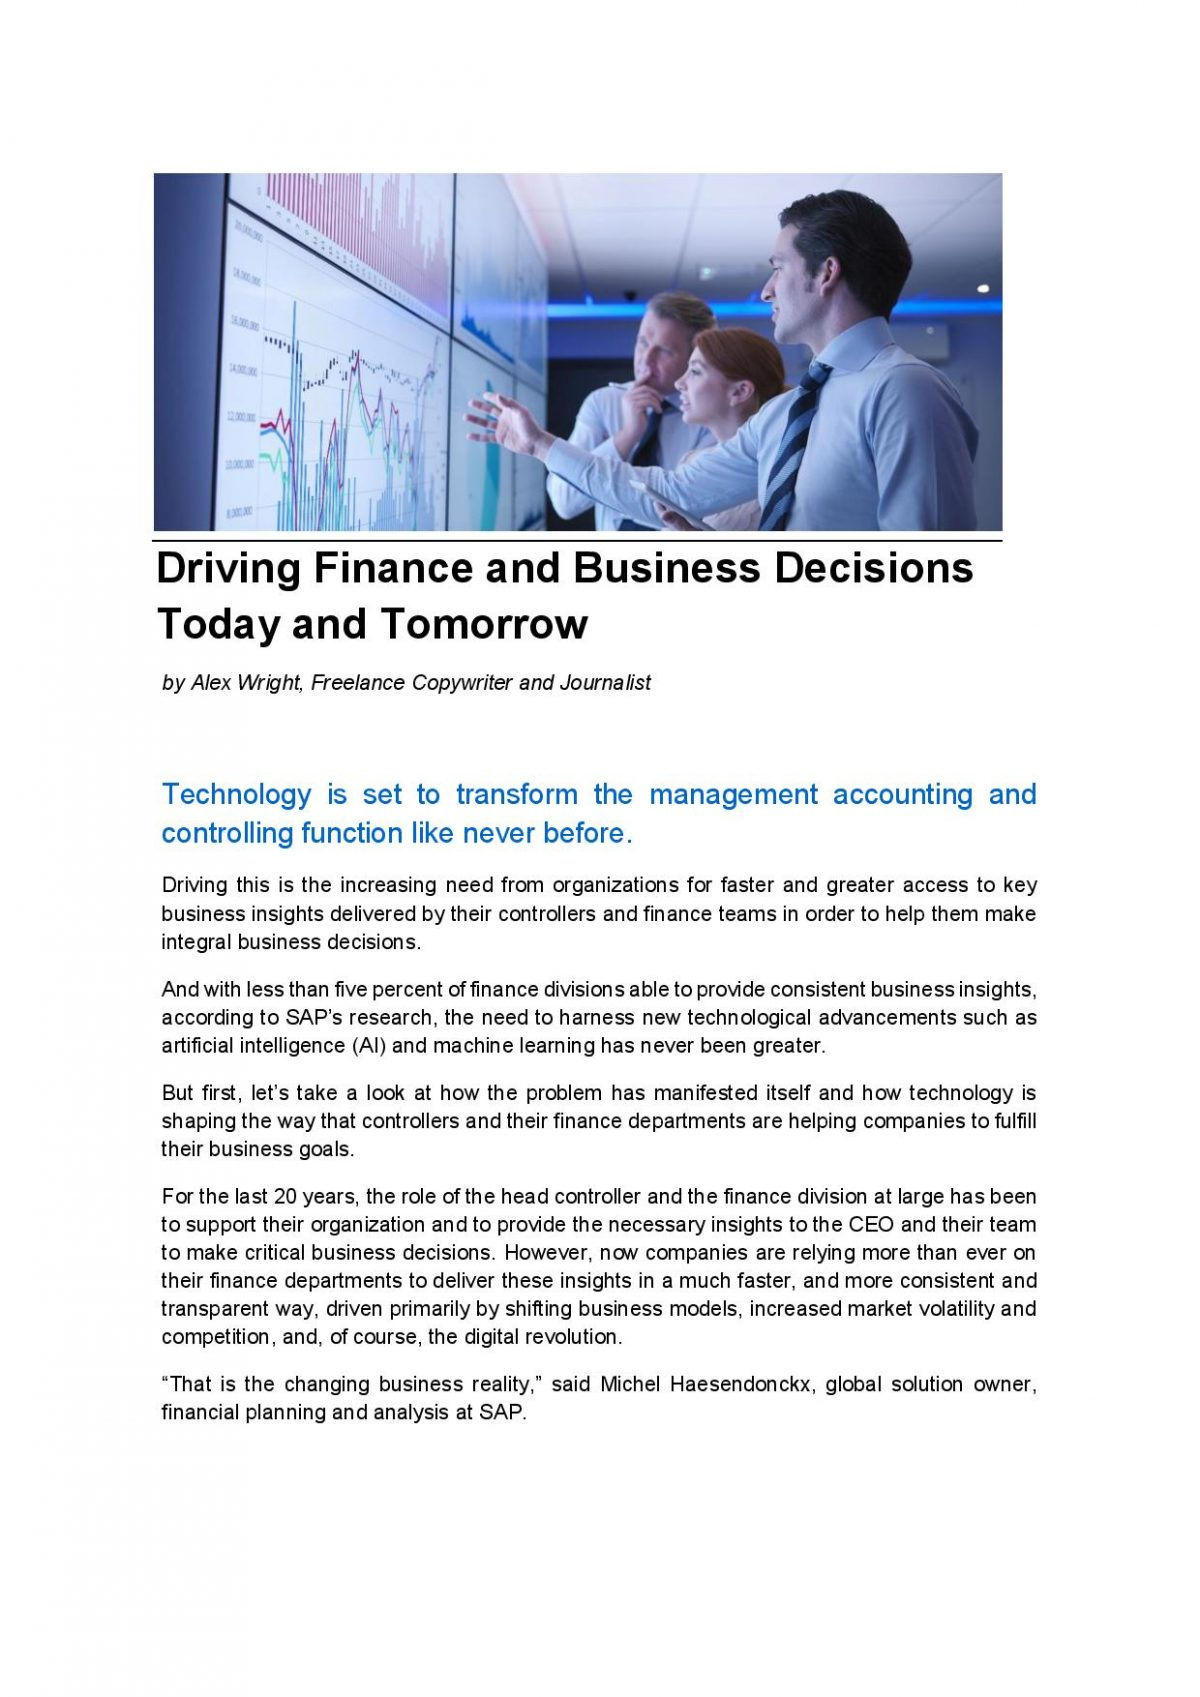 driving-finance-and-business-decisions-today-and-tomorrow-alex-wright-page-001